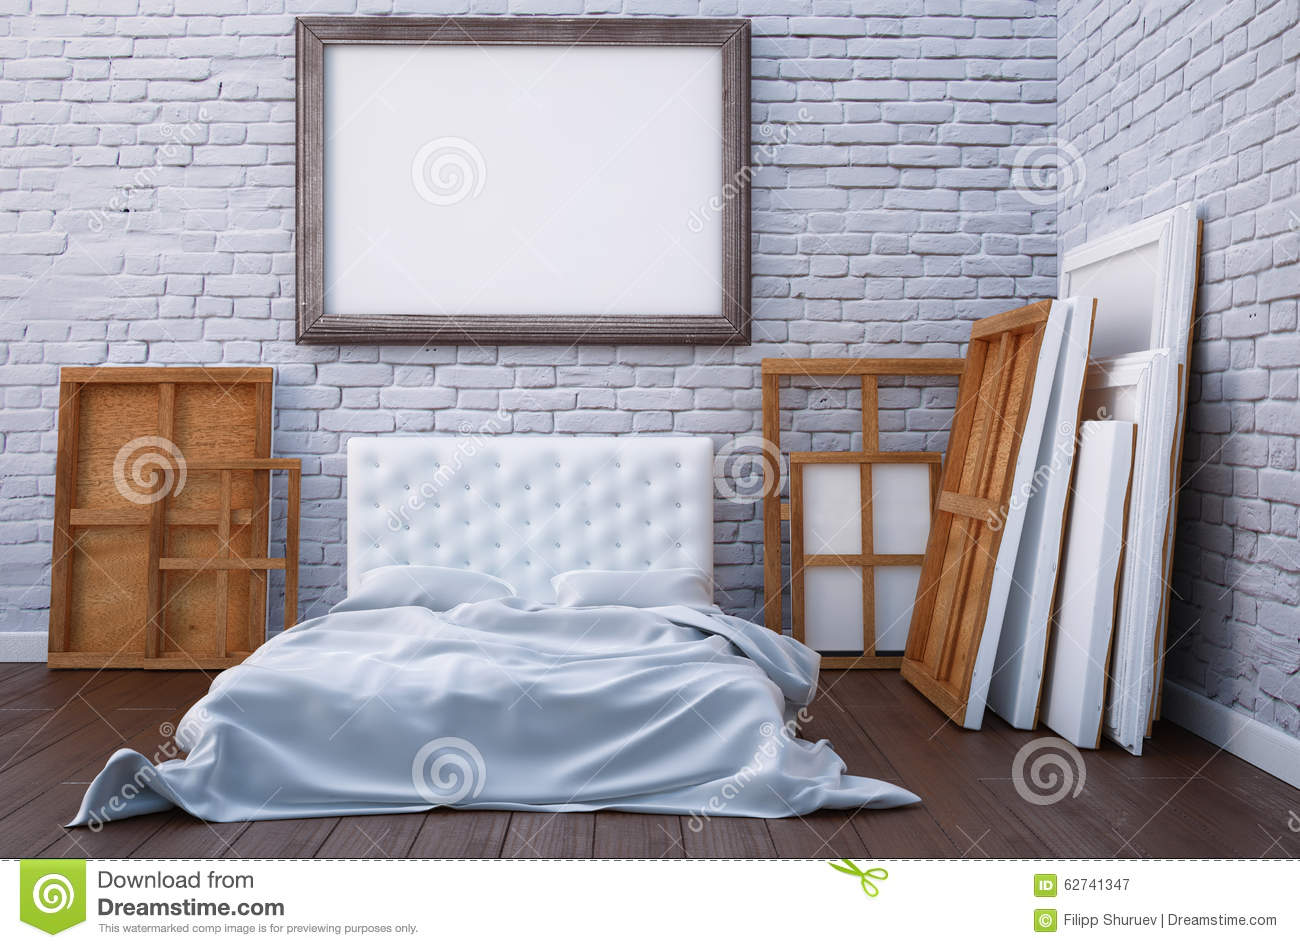 3d Render Bedroom With A Bed And The Pictures On The Floor And Wall